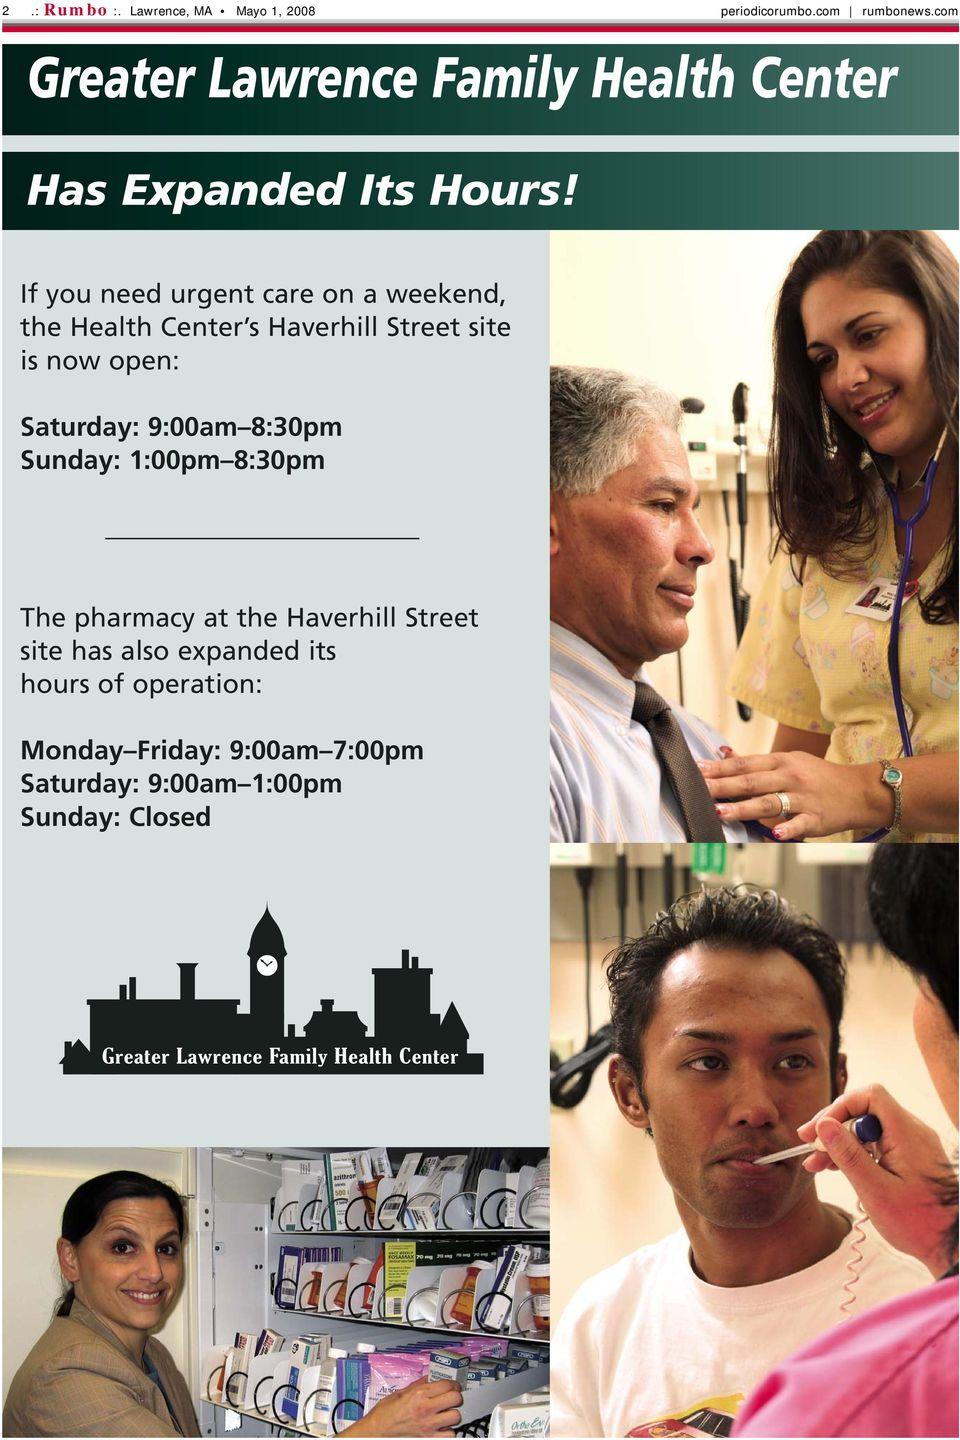 If you need urgent care on a weekend, the Health Center s Haverhill Street site is now open: Saturday: 9:00am